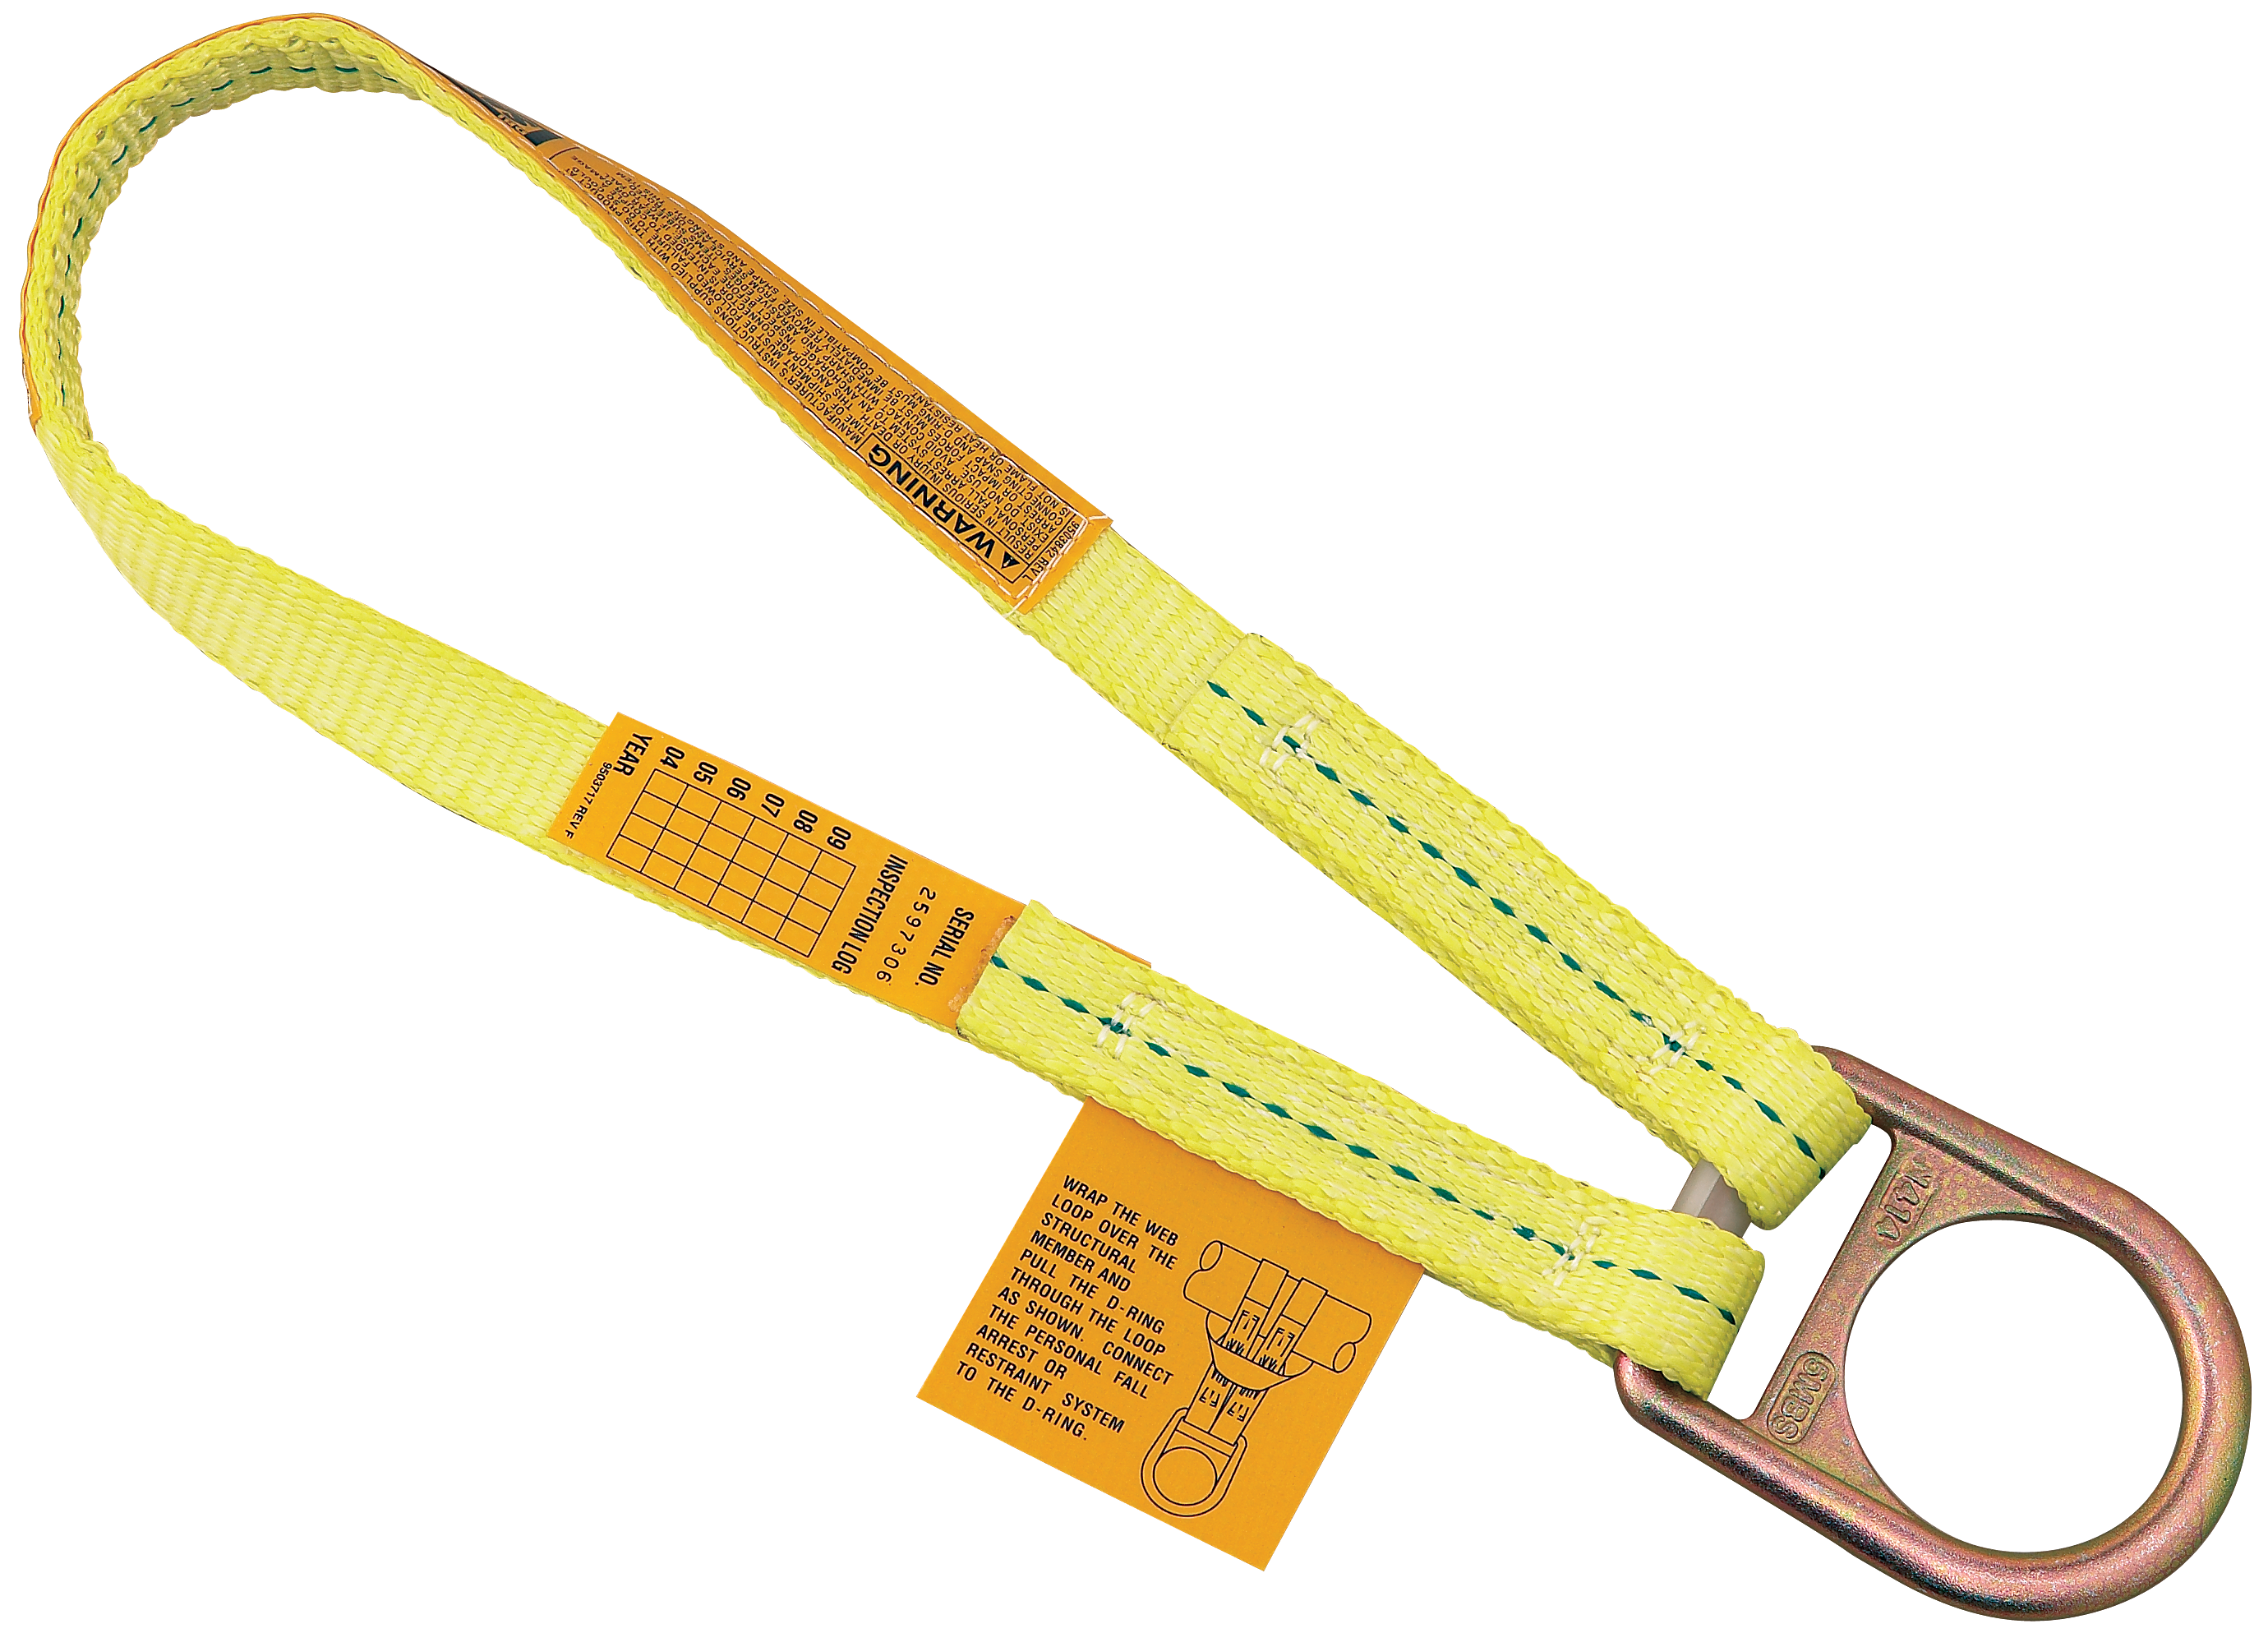 3M | DBI-SALA Scaffold Choker, 17 in. Web, 1201390